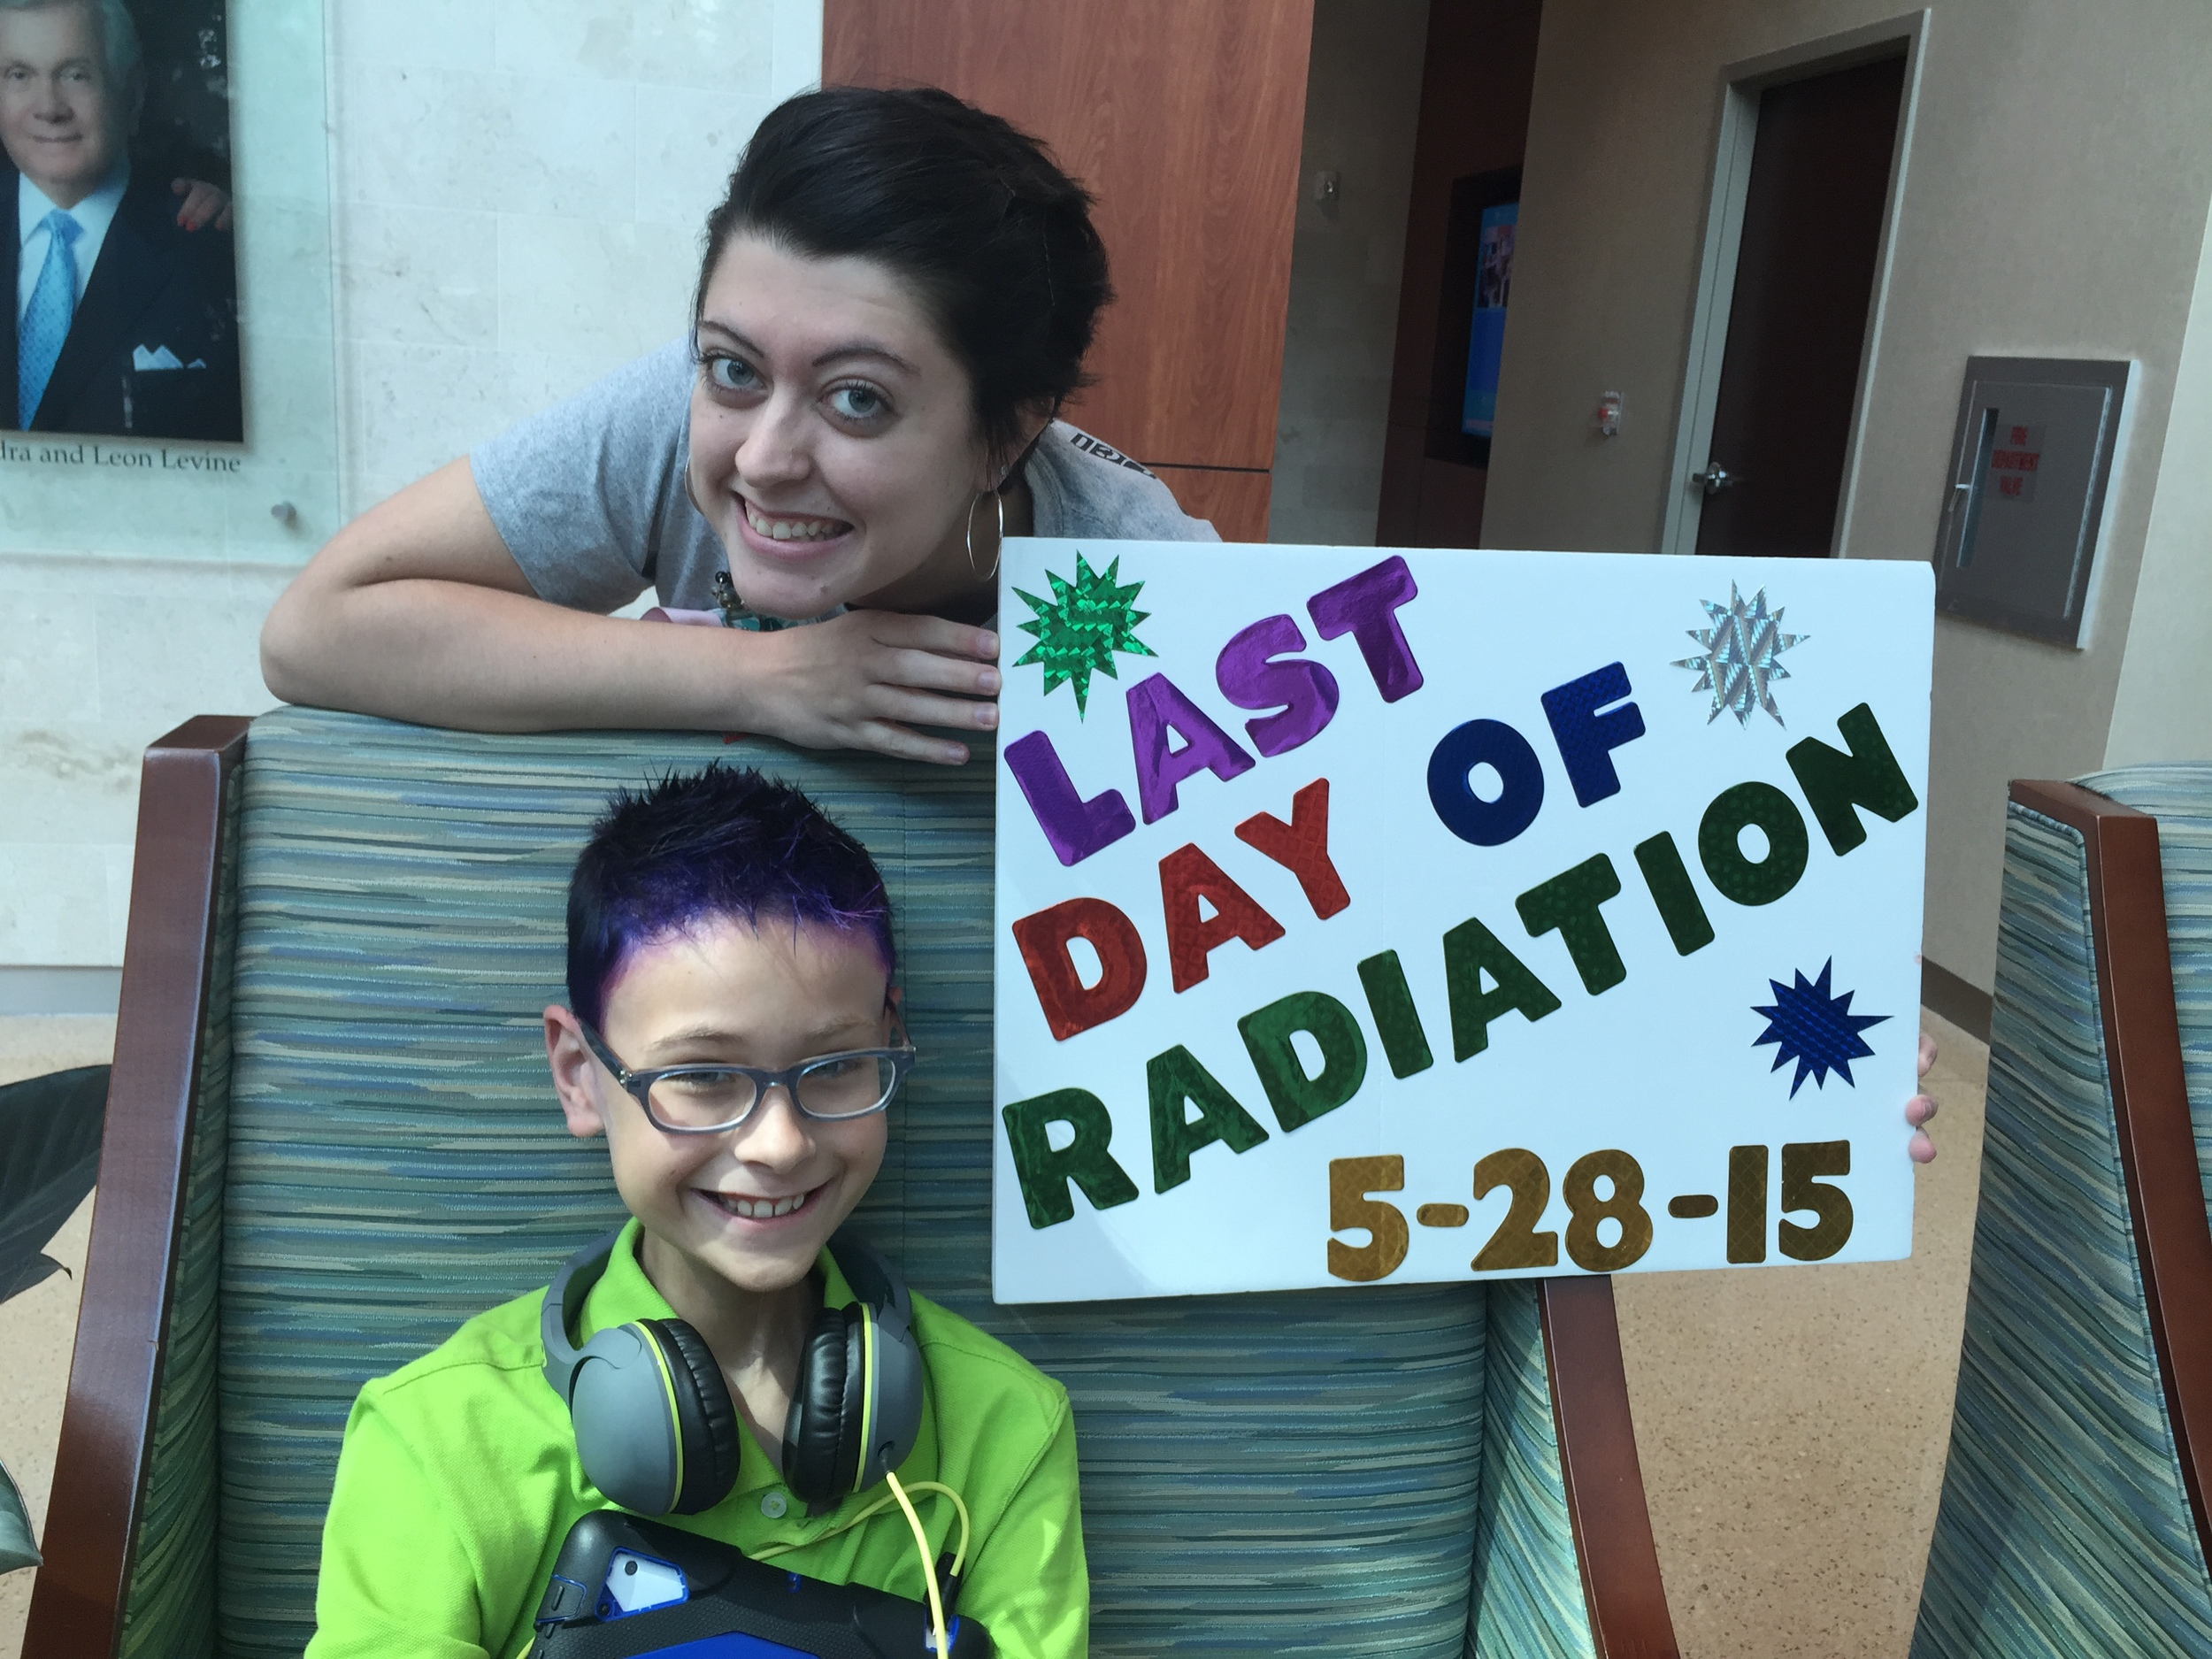 2015 E with SHelby last day of radiation.jpeg